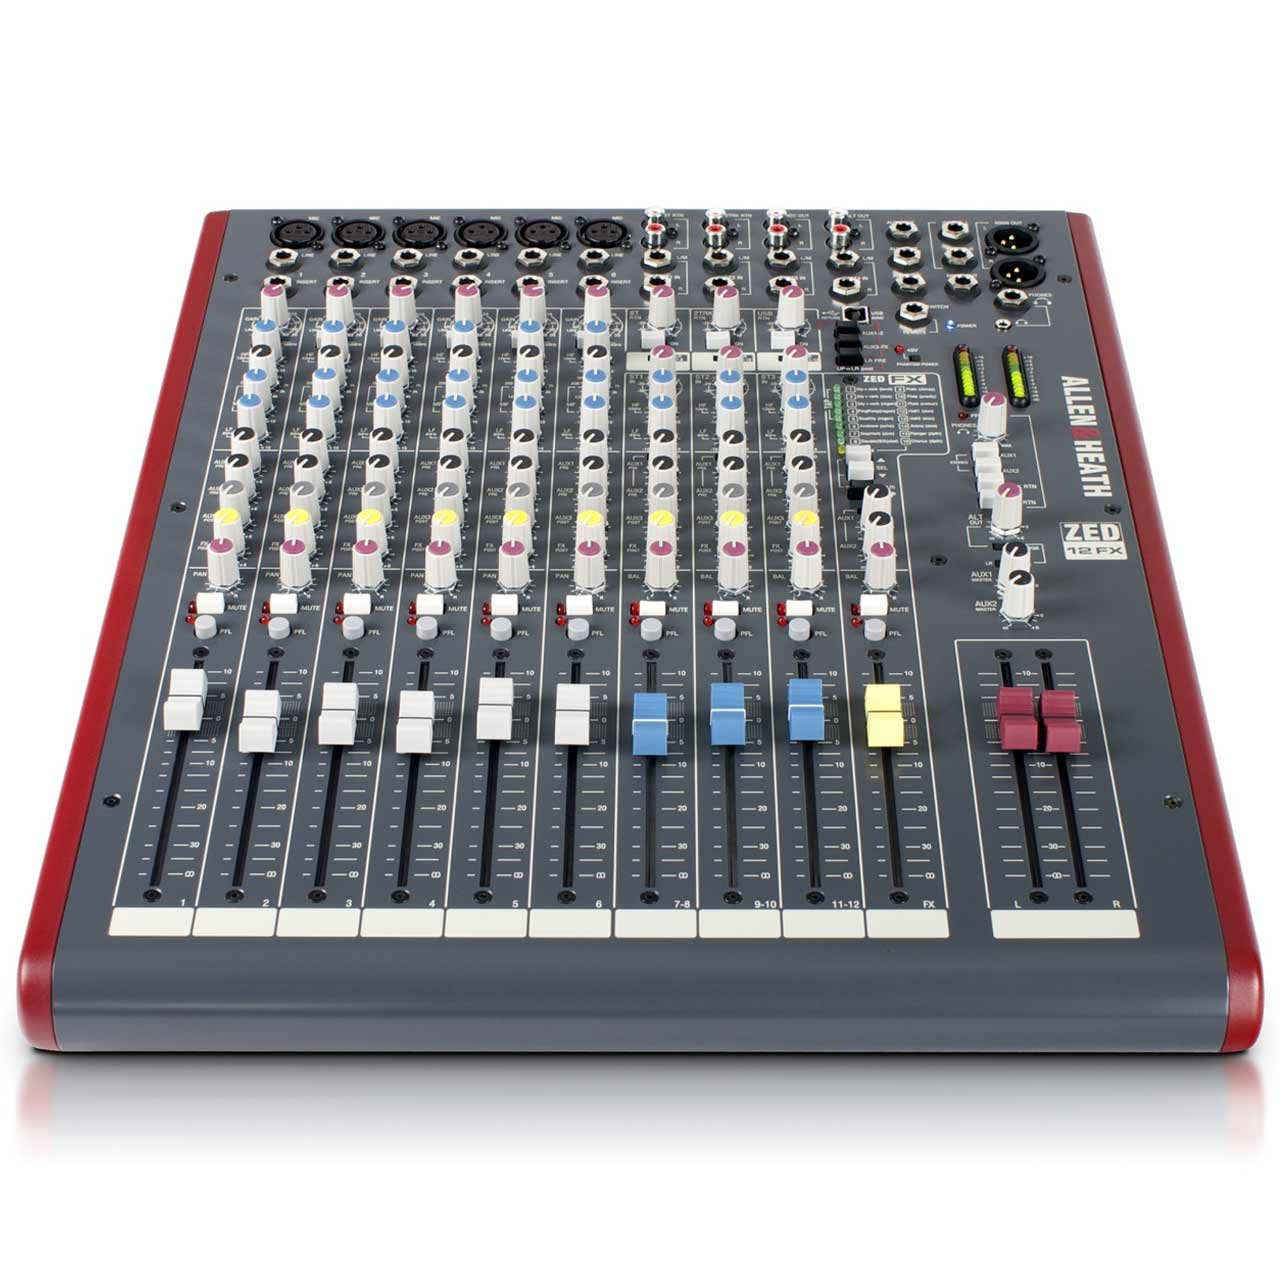 Analog Mixers - Allen & Heath ZED-12FX - Analogue Mixer With USB